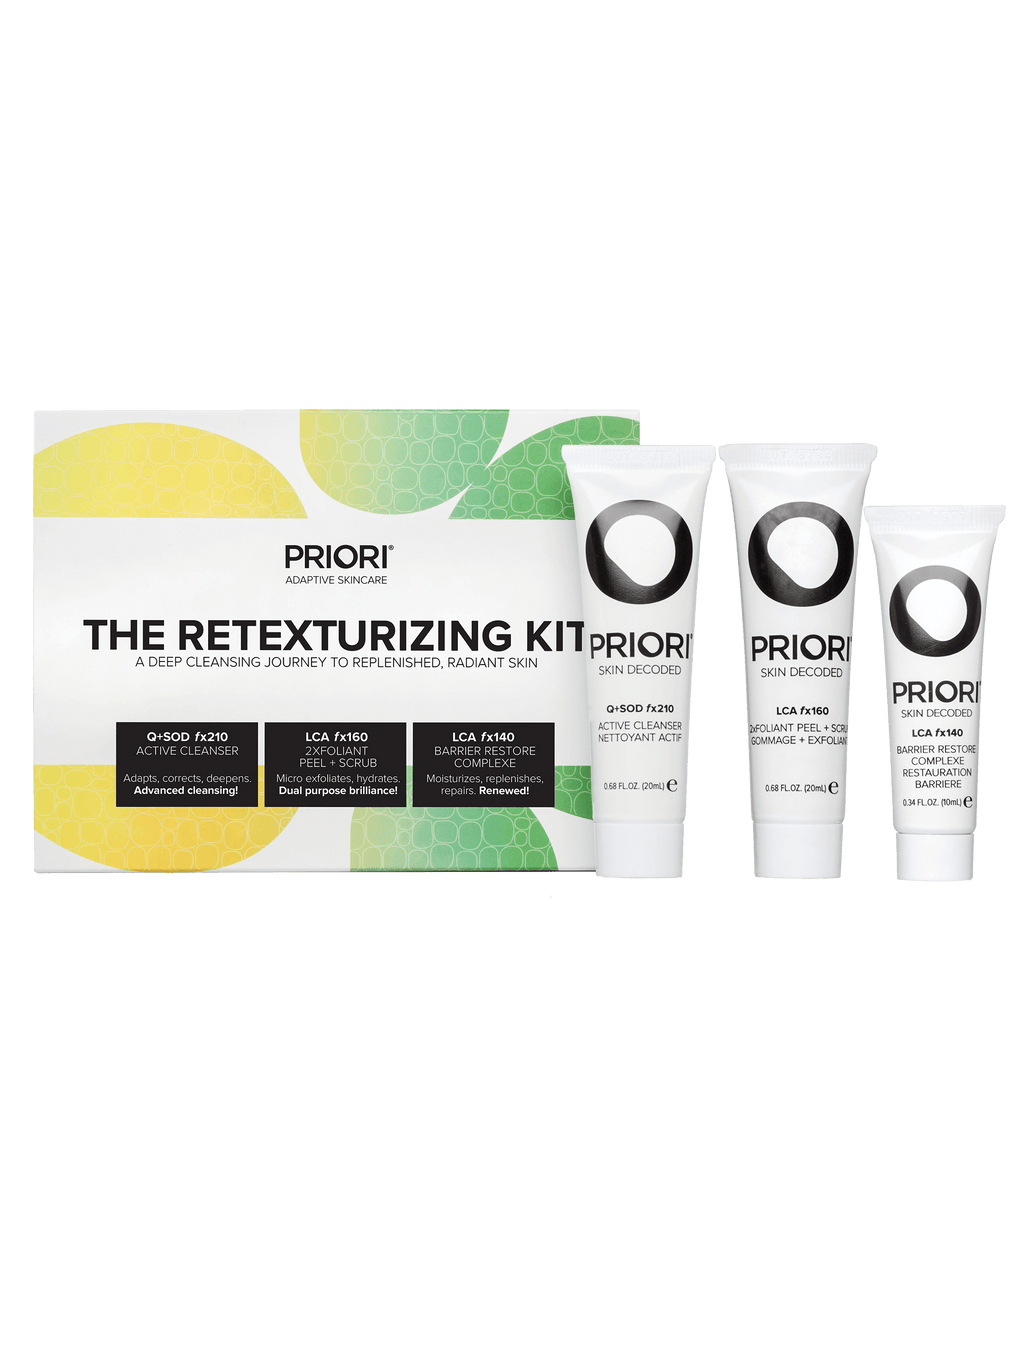 The Retexturizing Kit